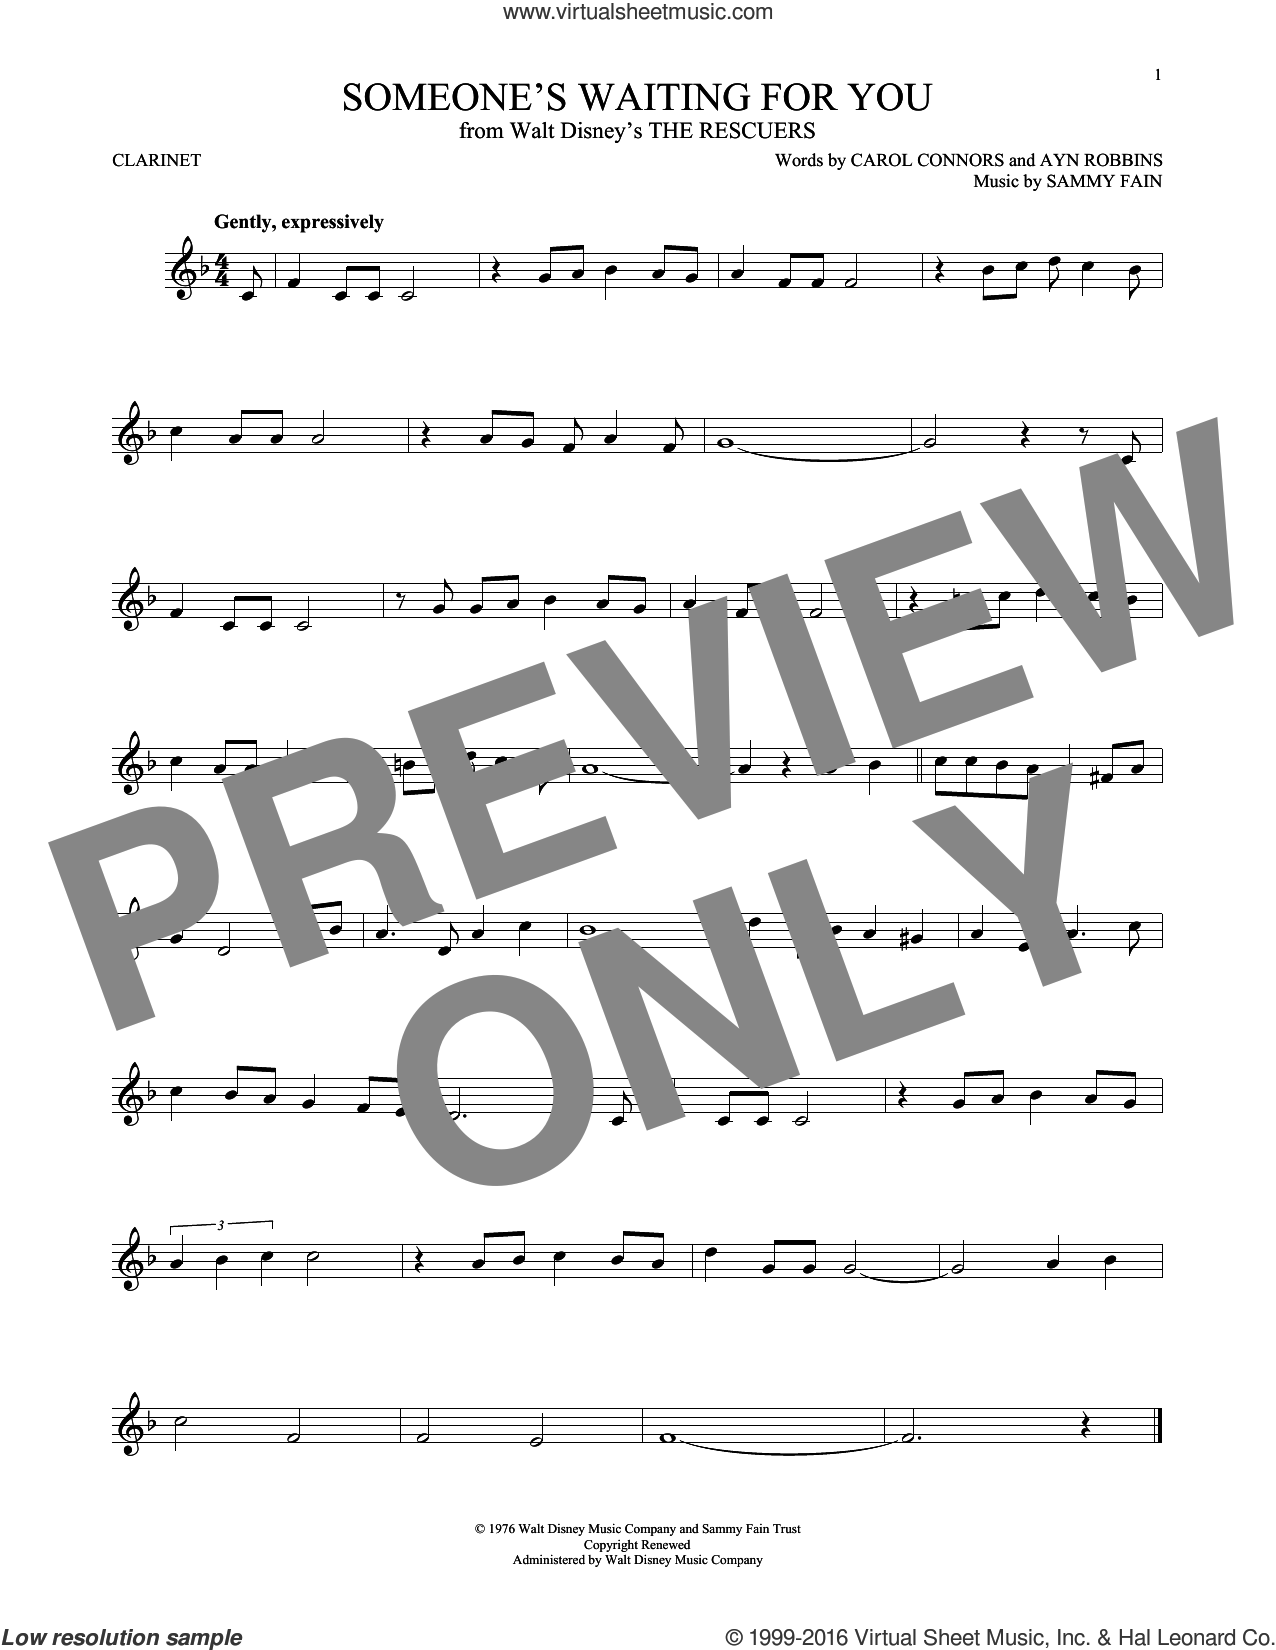 Someone's Waiting For You sheet music for clarinet solo by Sammy Fain, Ayn Robbins and Carol Connors, intermediate clarinet. Score Image Preview.